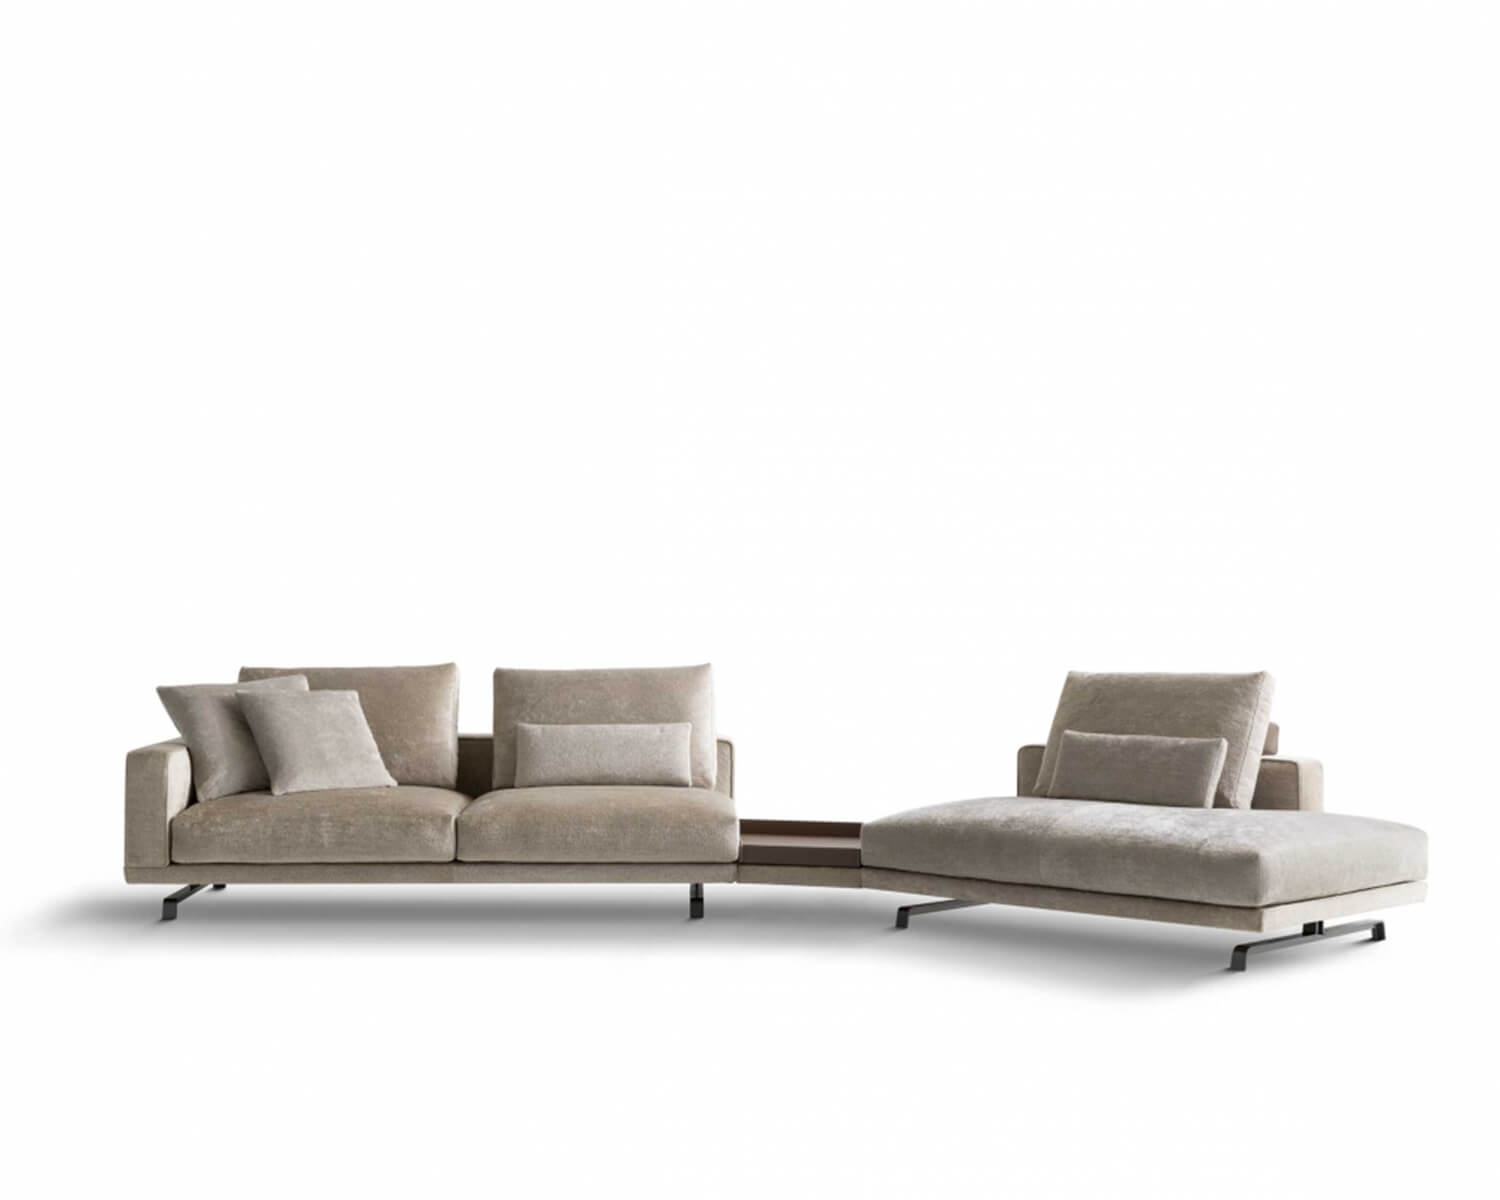 Front view of Beige Octave modular sectional on a white background